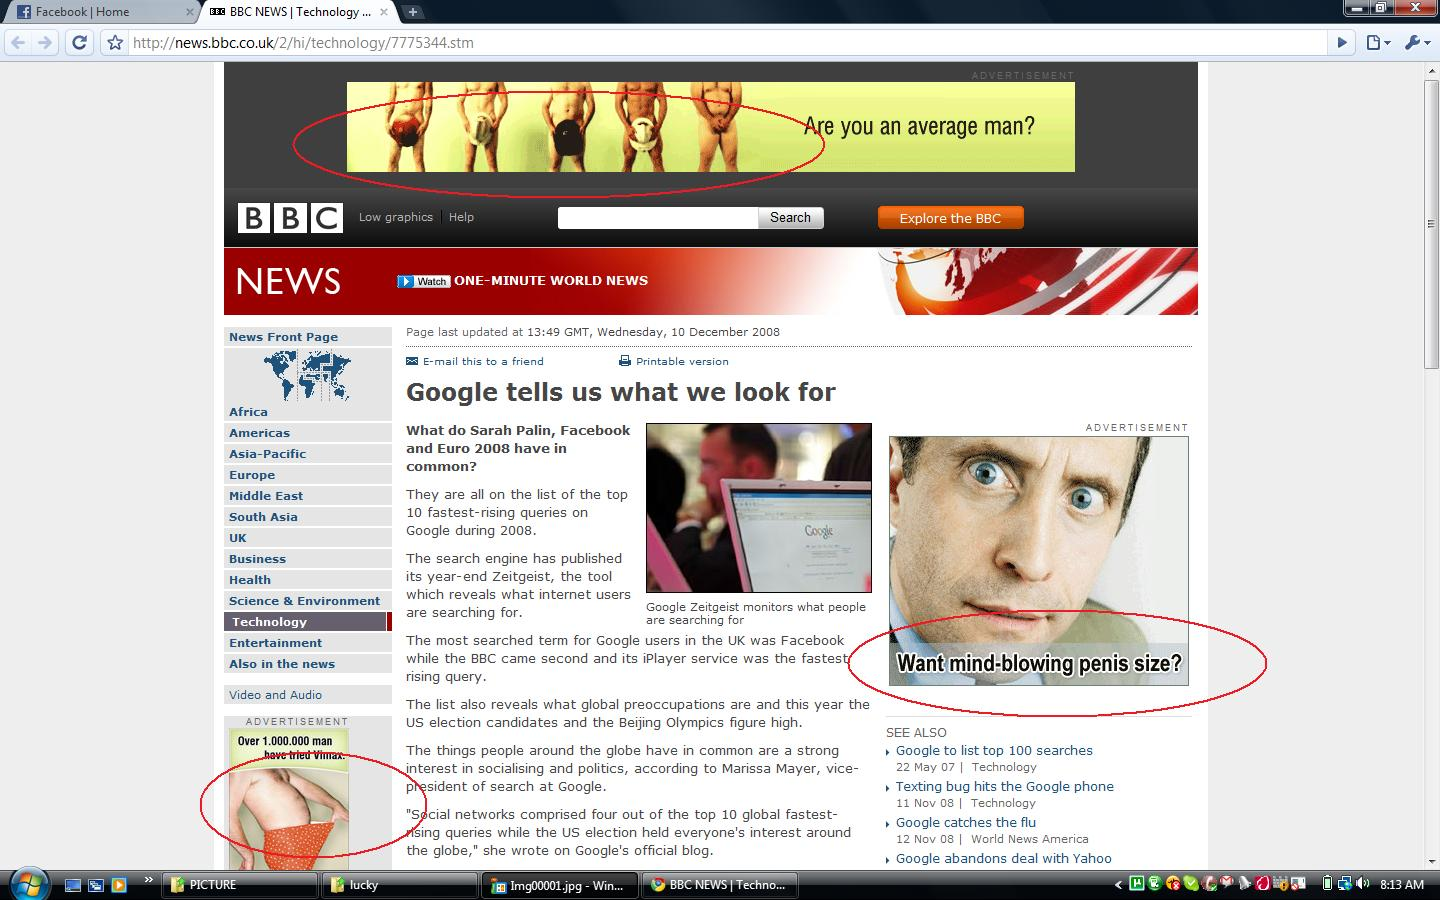 BBC with Adult Advertisements - Click to enlarge